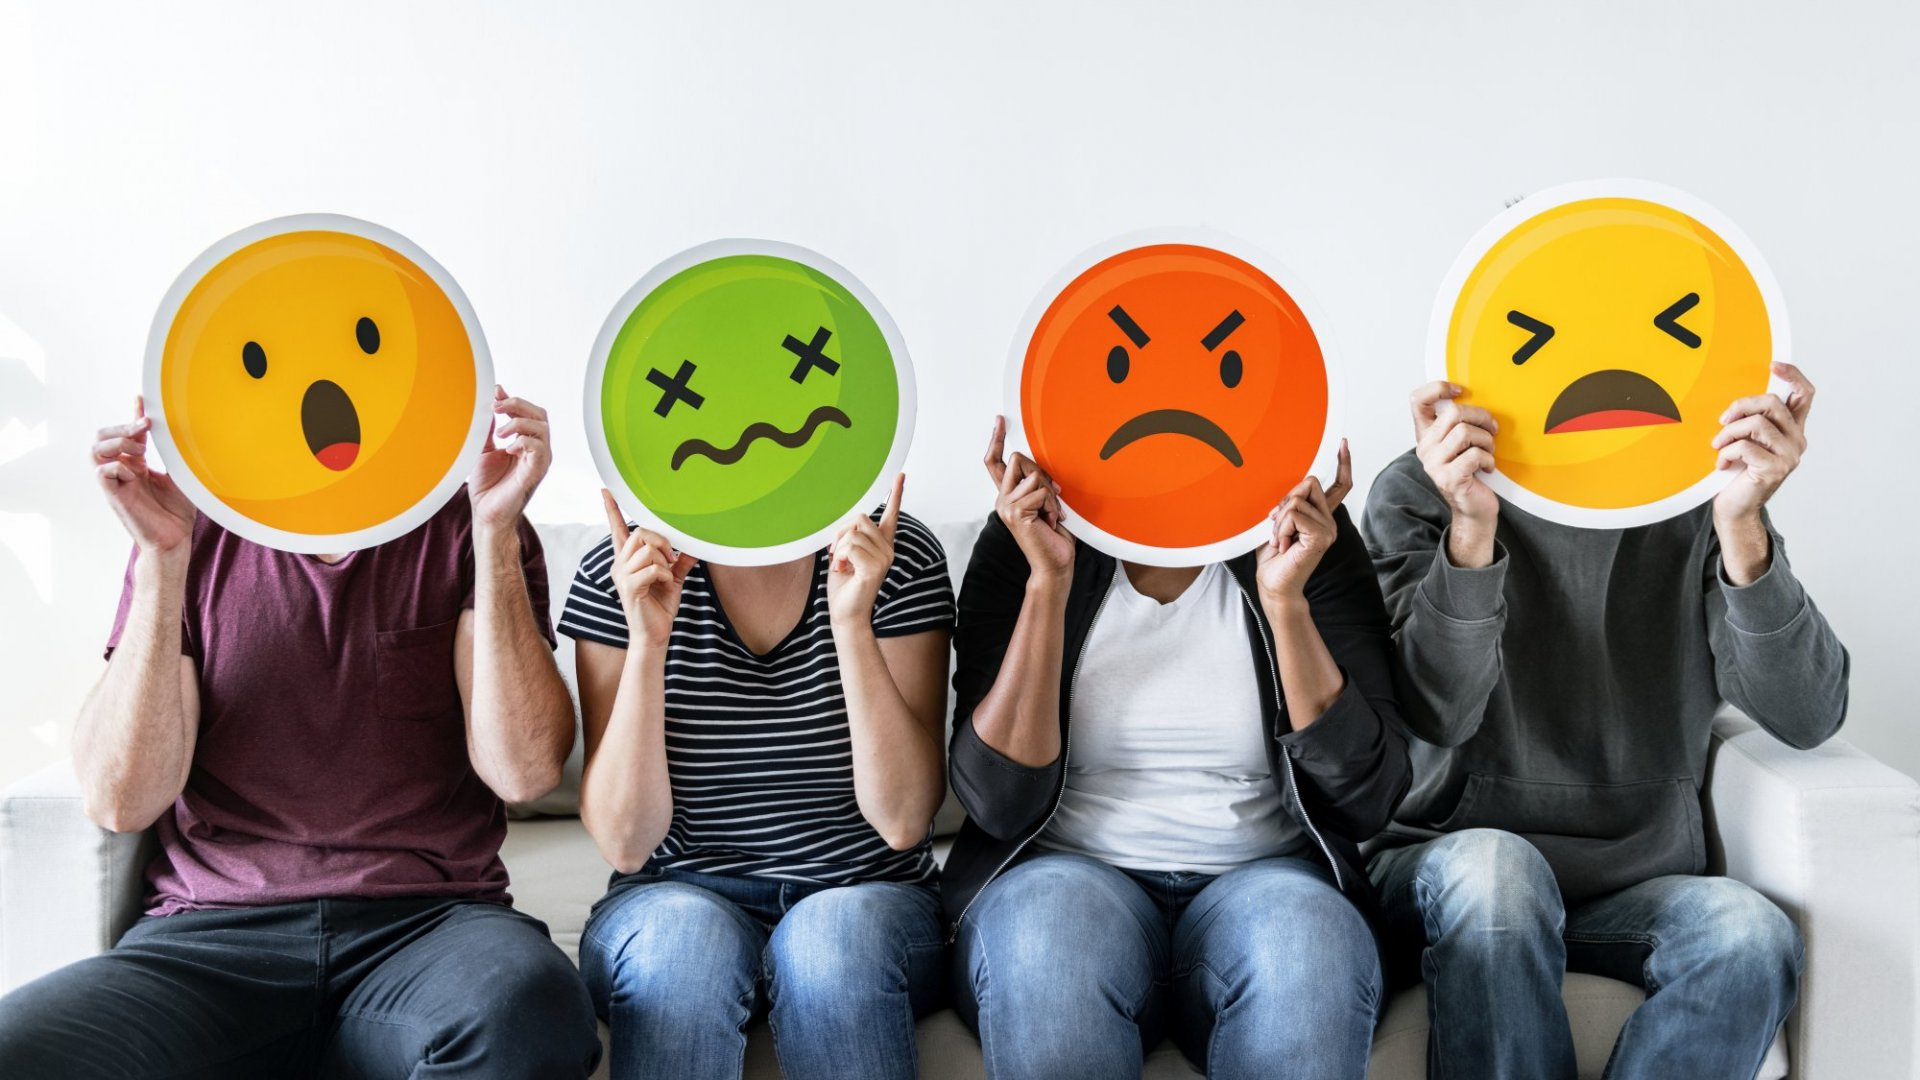 Use This Simple Strategy to Manage Your Emotions More Effectively